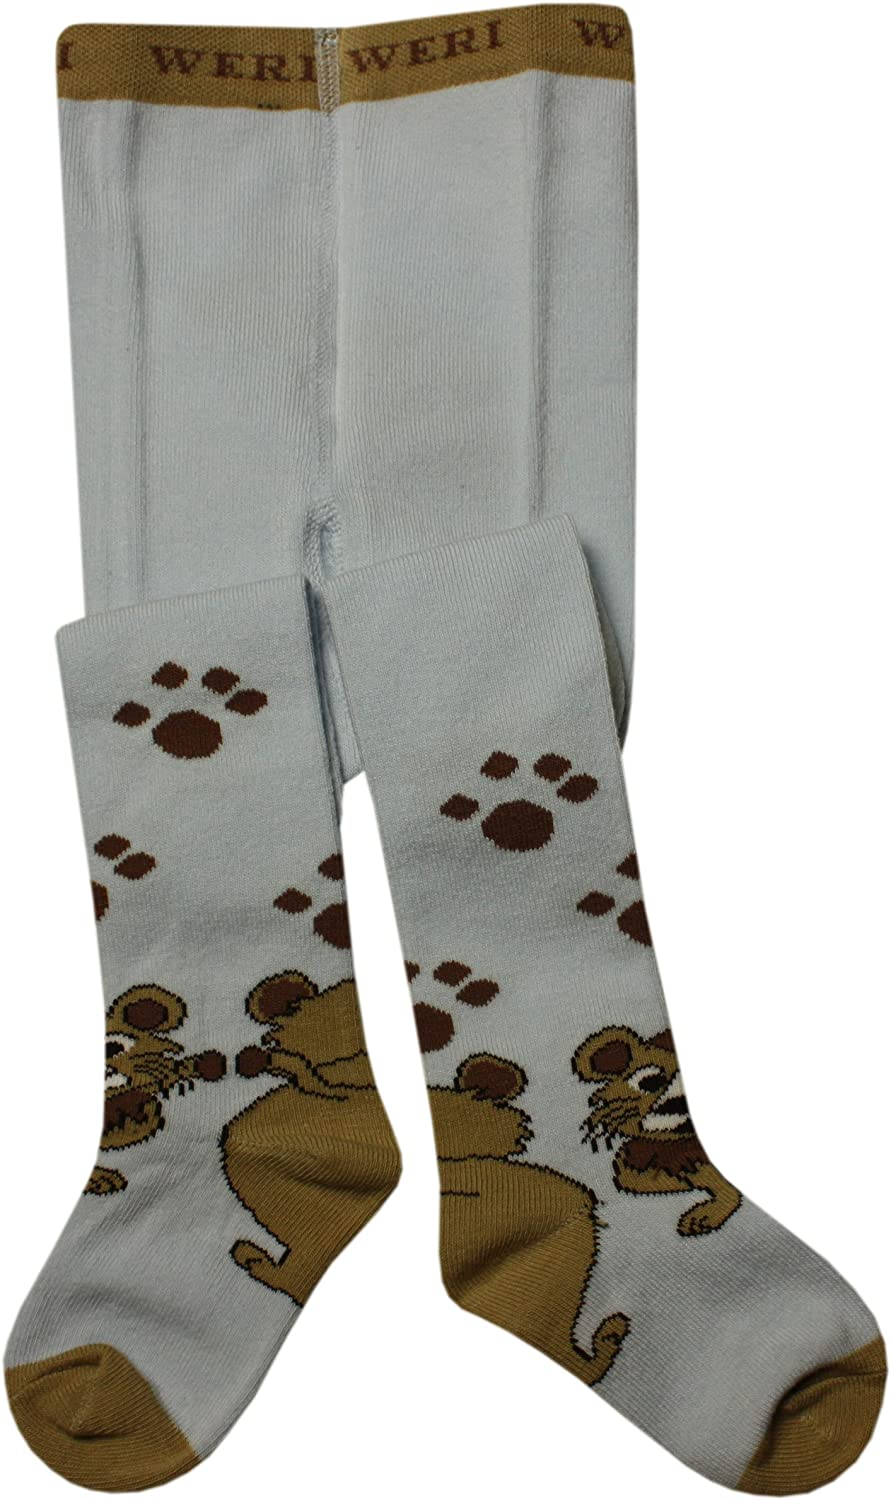 cotton in 3 great colours Weri Spezials Baby and childrens tights for boys with lion motif